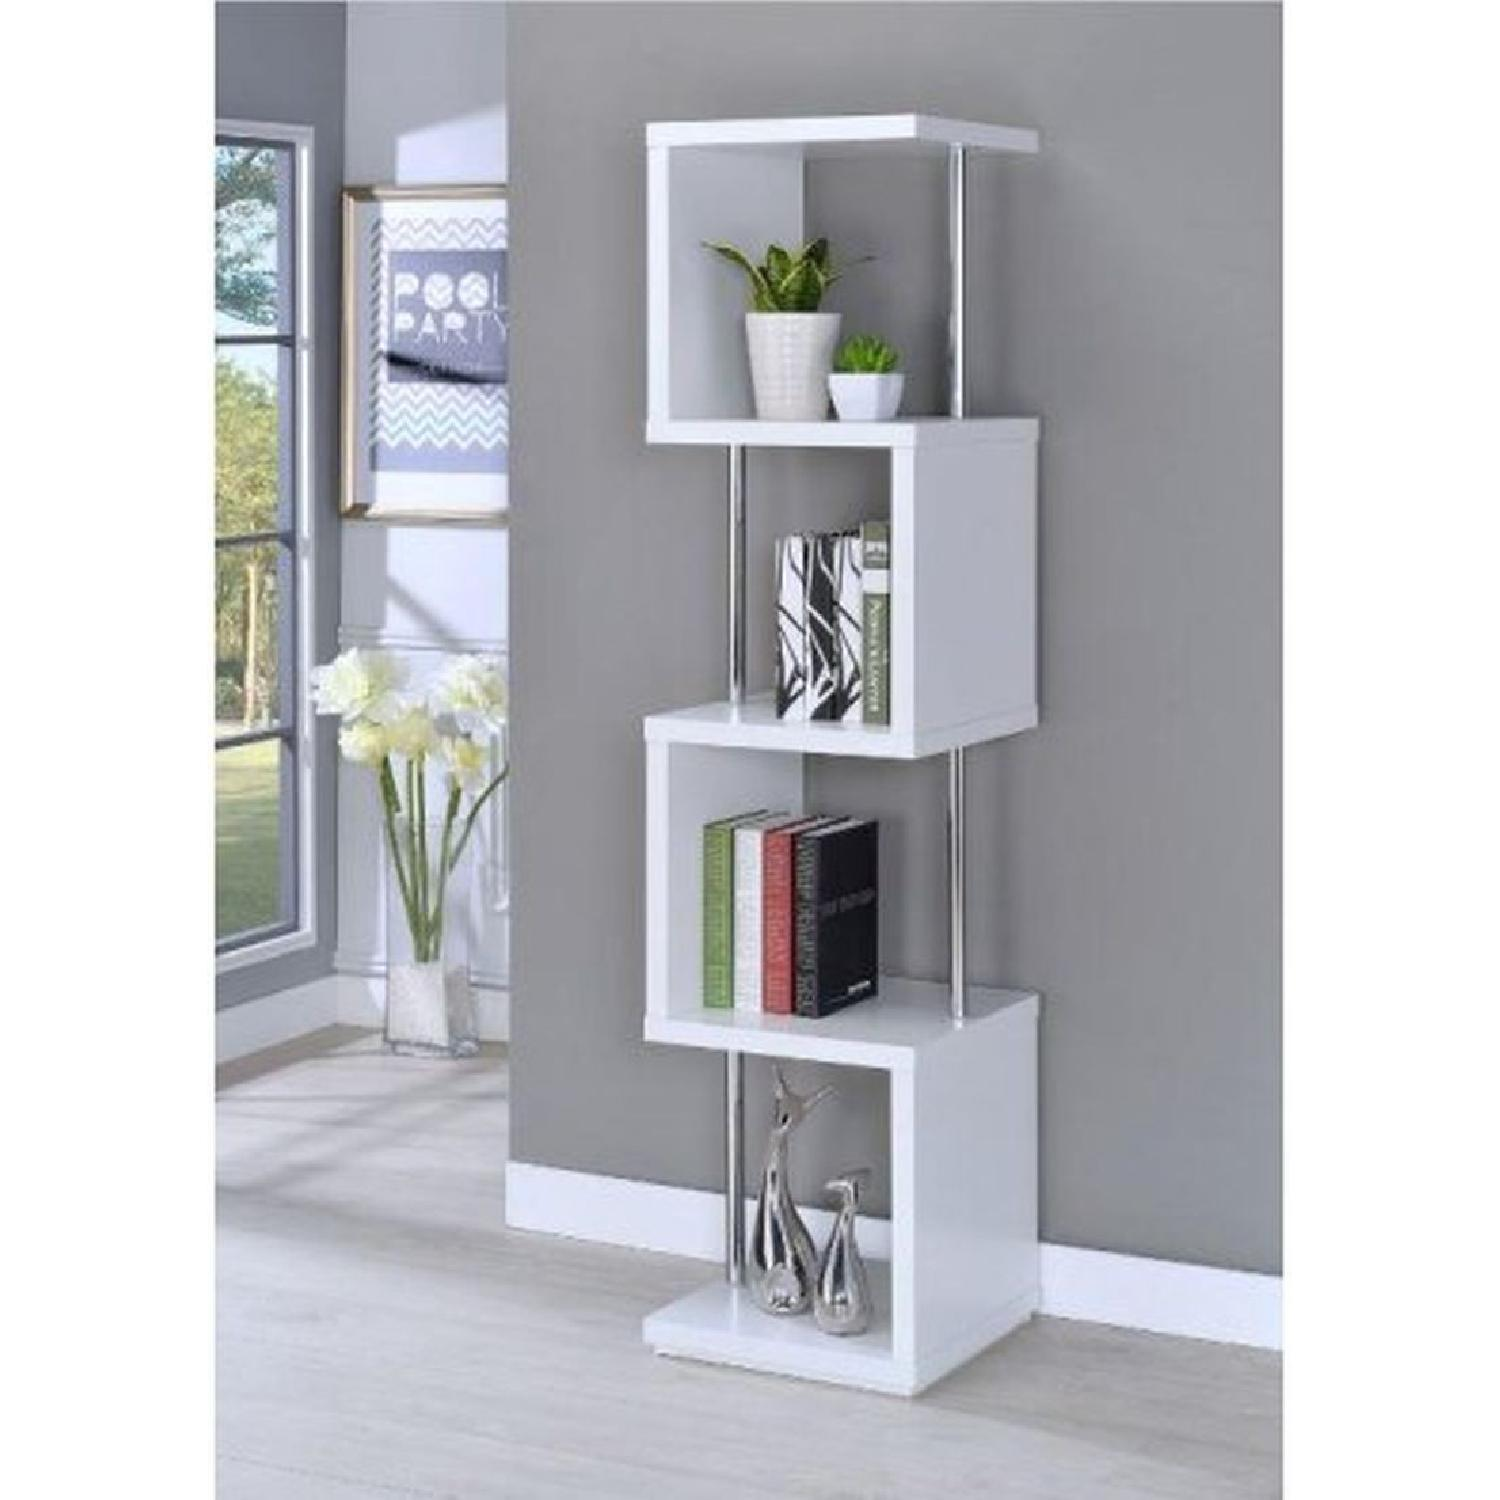 4-Tier White Bookcase w/ Chrome Metal Bar Accents - image-4